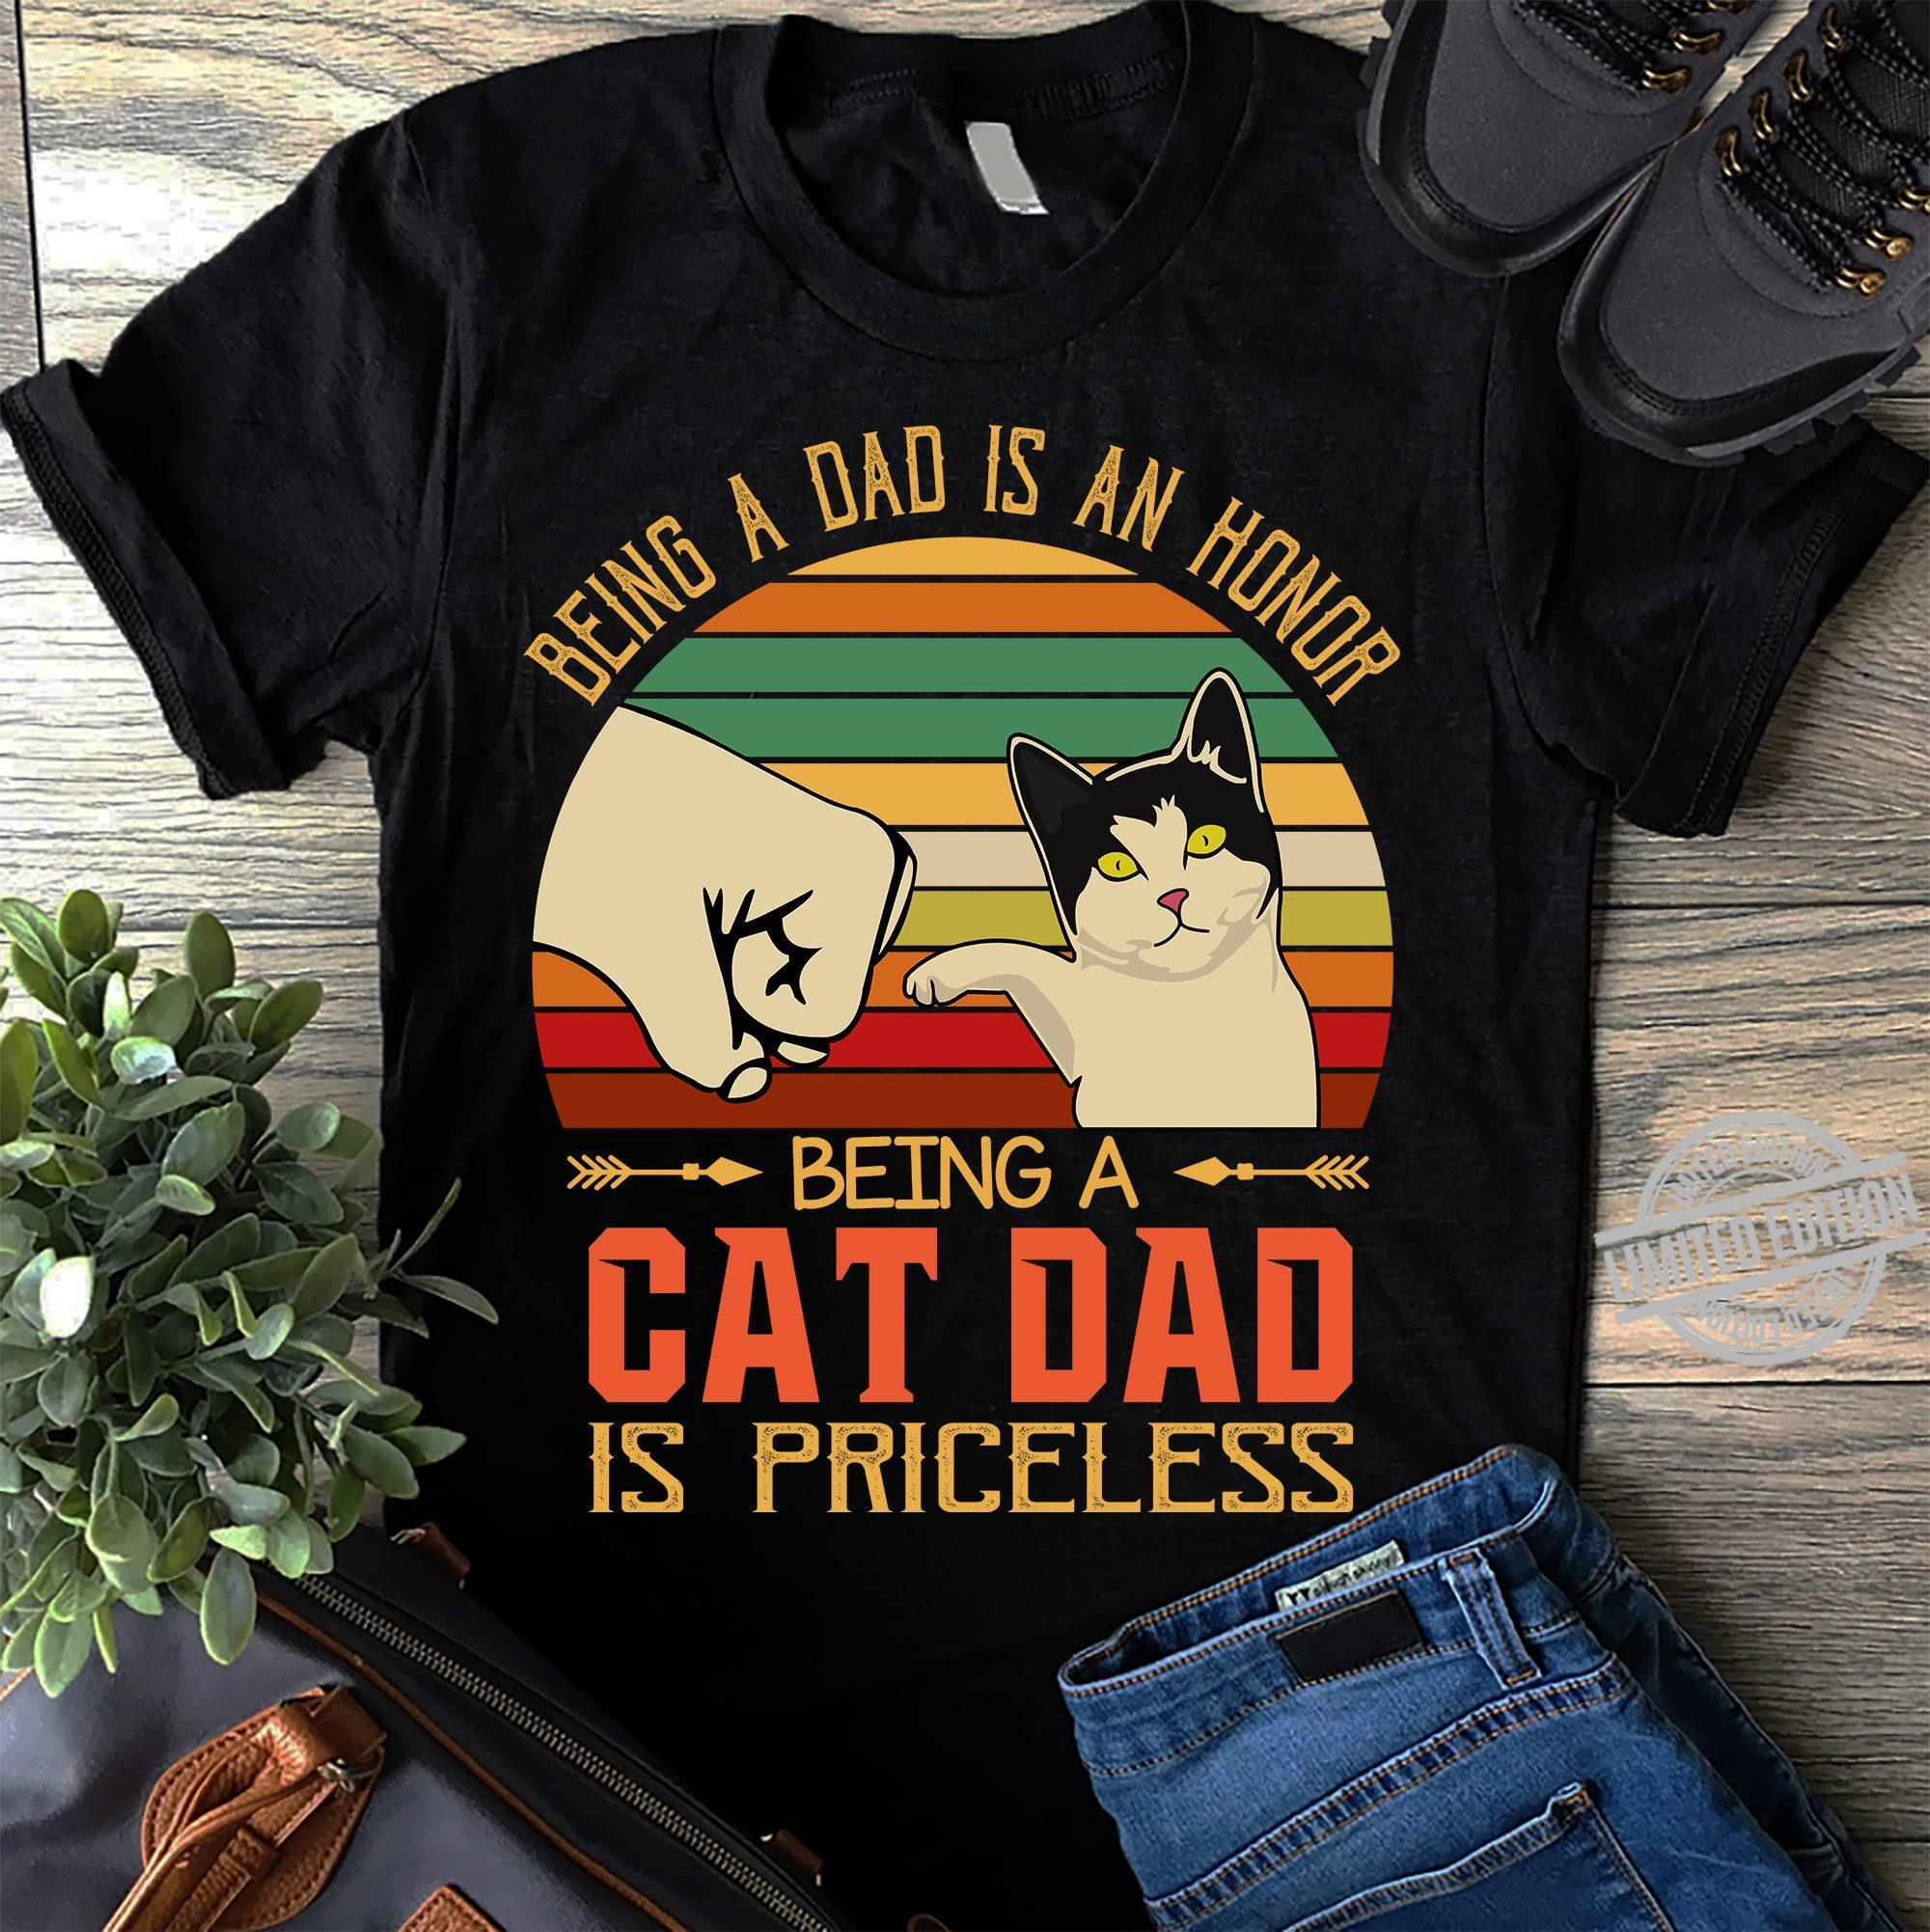 Being A Dad Is An Honor Being A Cat Dad Is Priceless Shirt